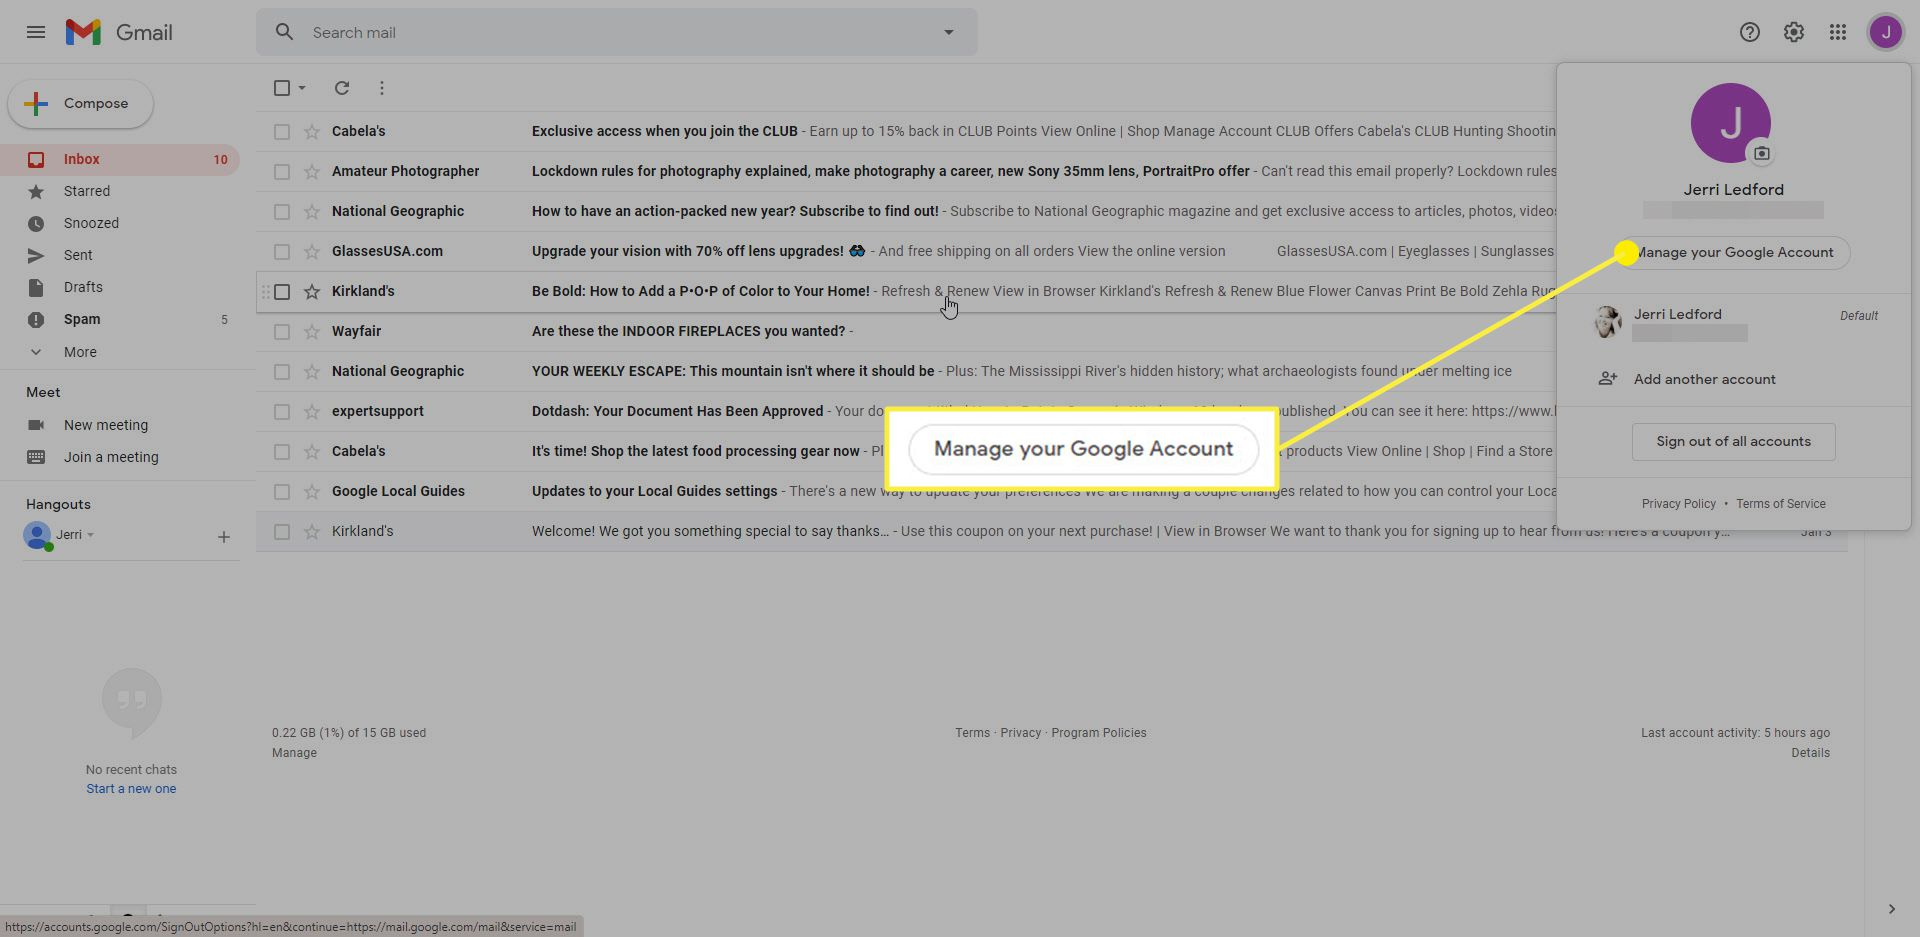 Gmail with the Manage your Google Account button highlighted